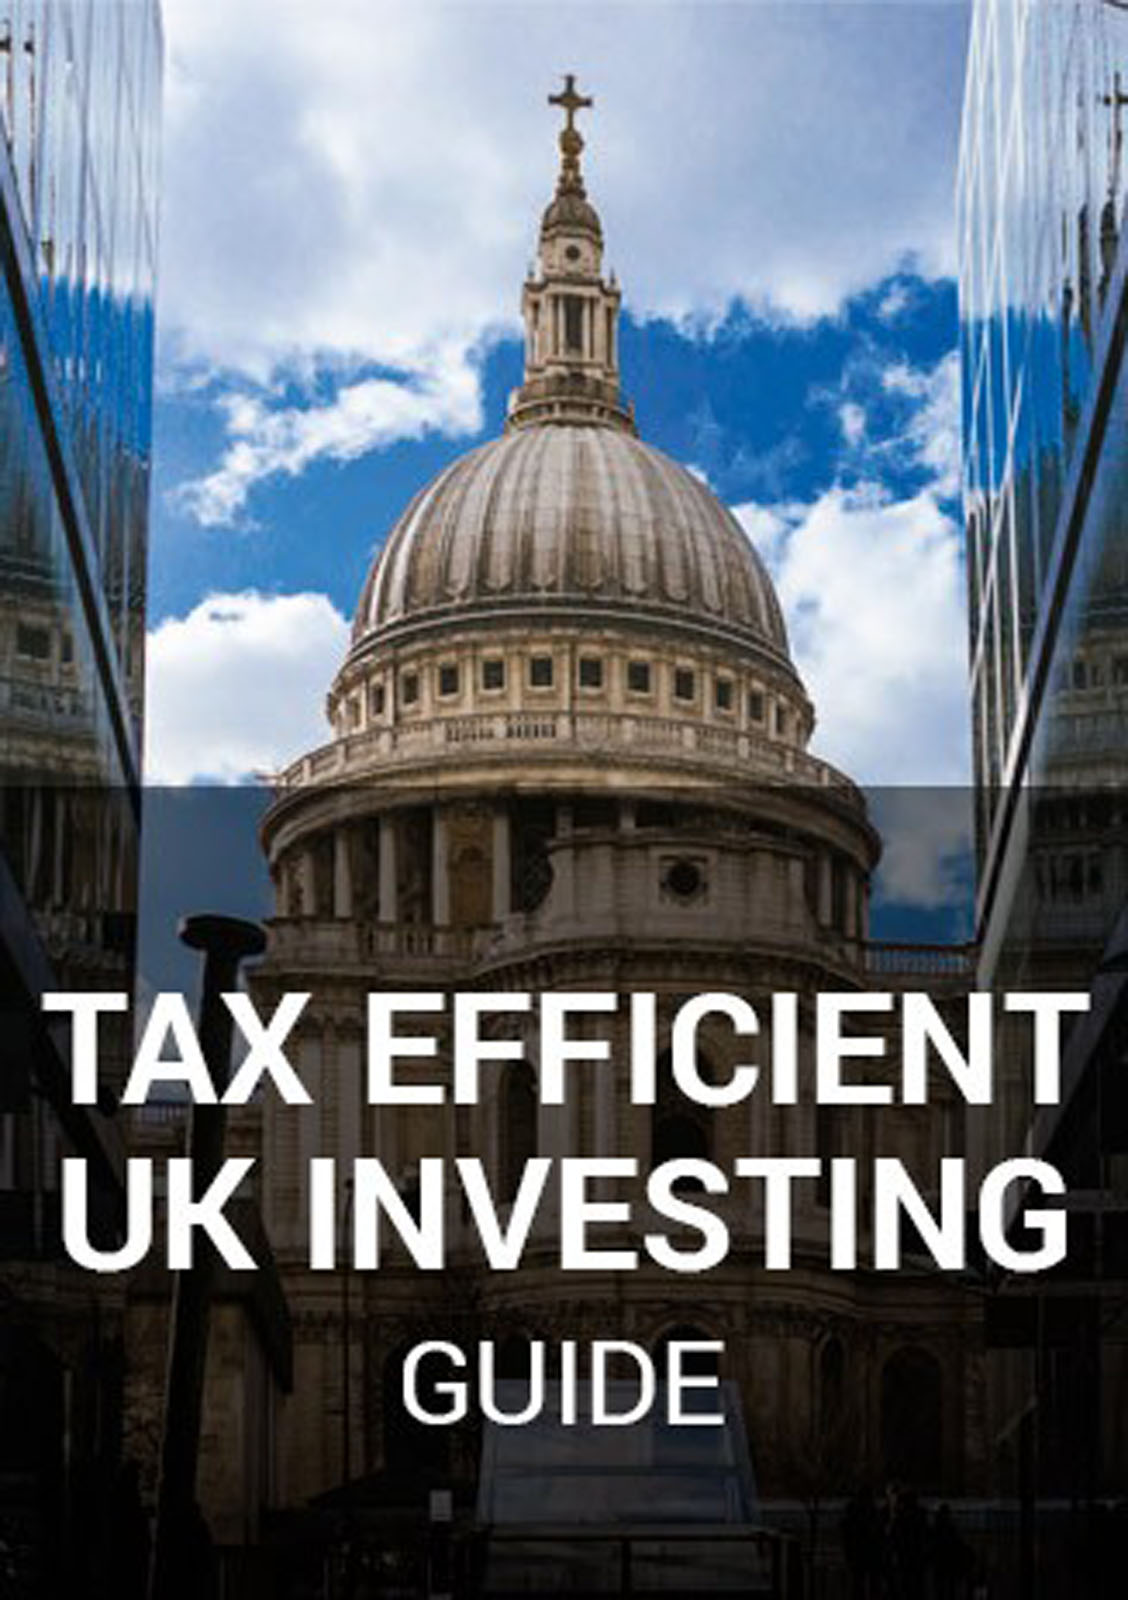 Tax Efficient UK Guide Image